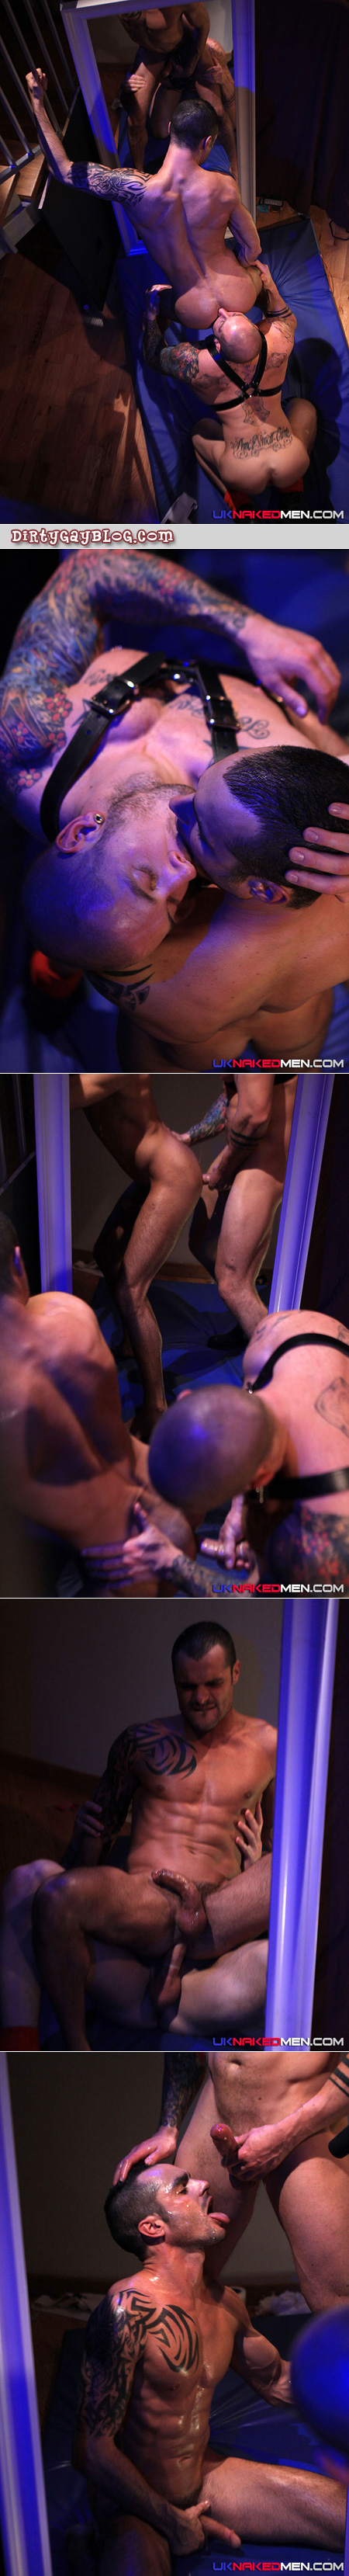 A beefy, tattooed guy in leather finds a thin, horny male with 6-pack abs to fuck in a darkroom.